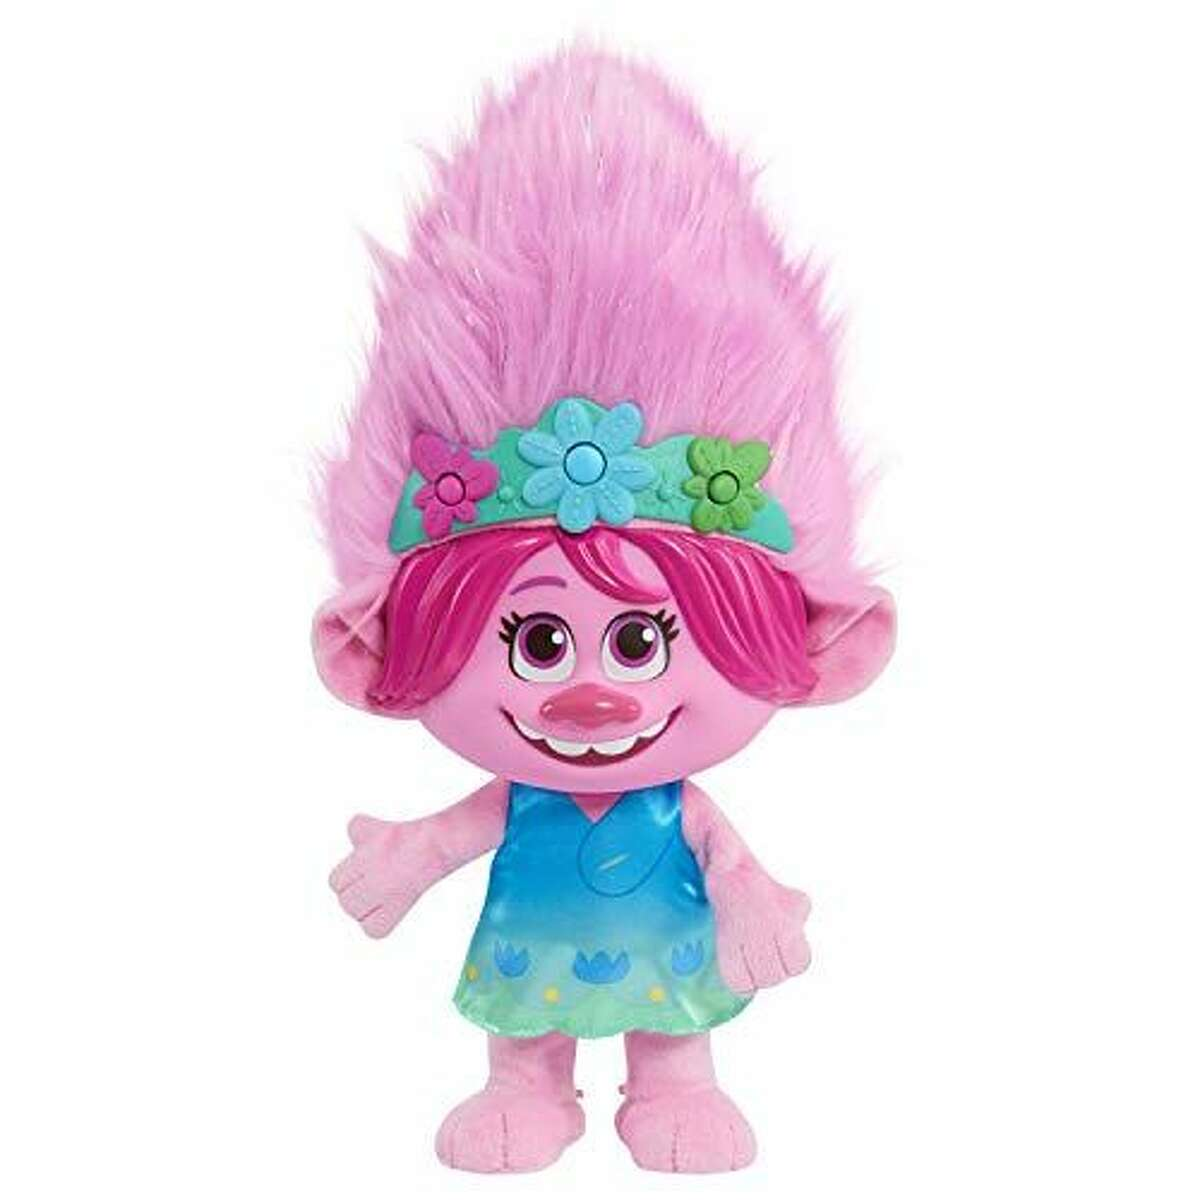 'Trolls World Tour' Color Poppin' Poppy: $19.79 Shop Now This Poppy plush is just as energetic and musical as you'd want her to be. She can play games like Poppy Says, sing songs like